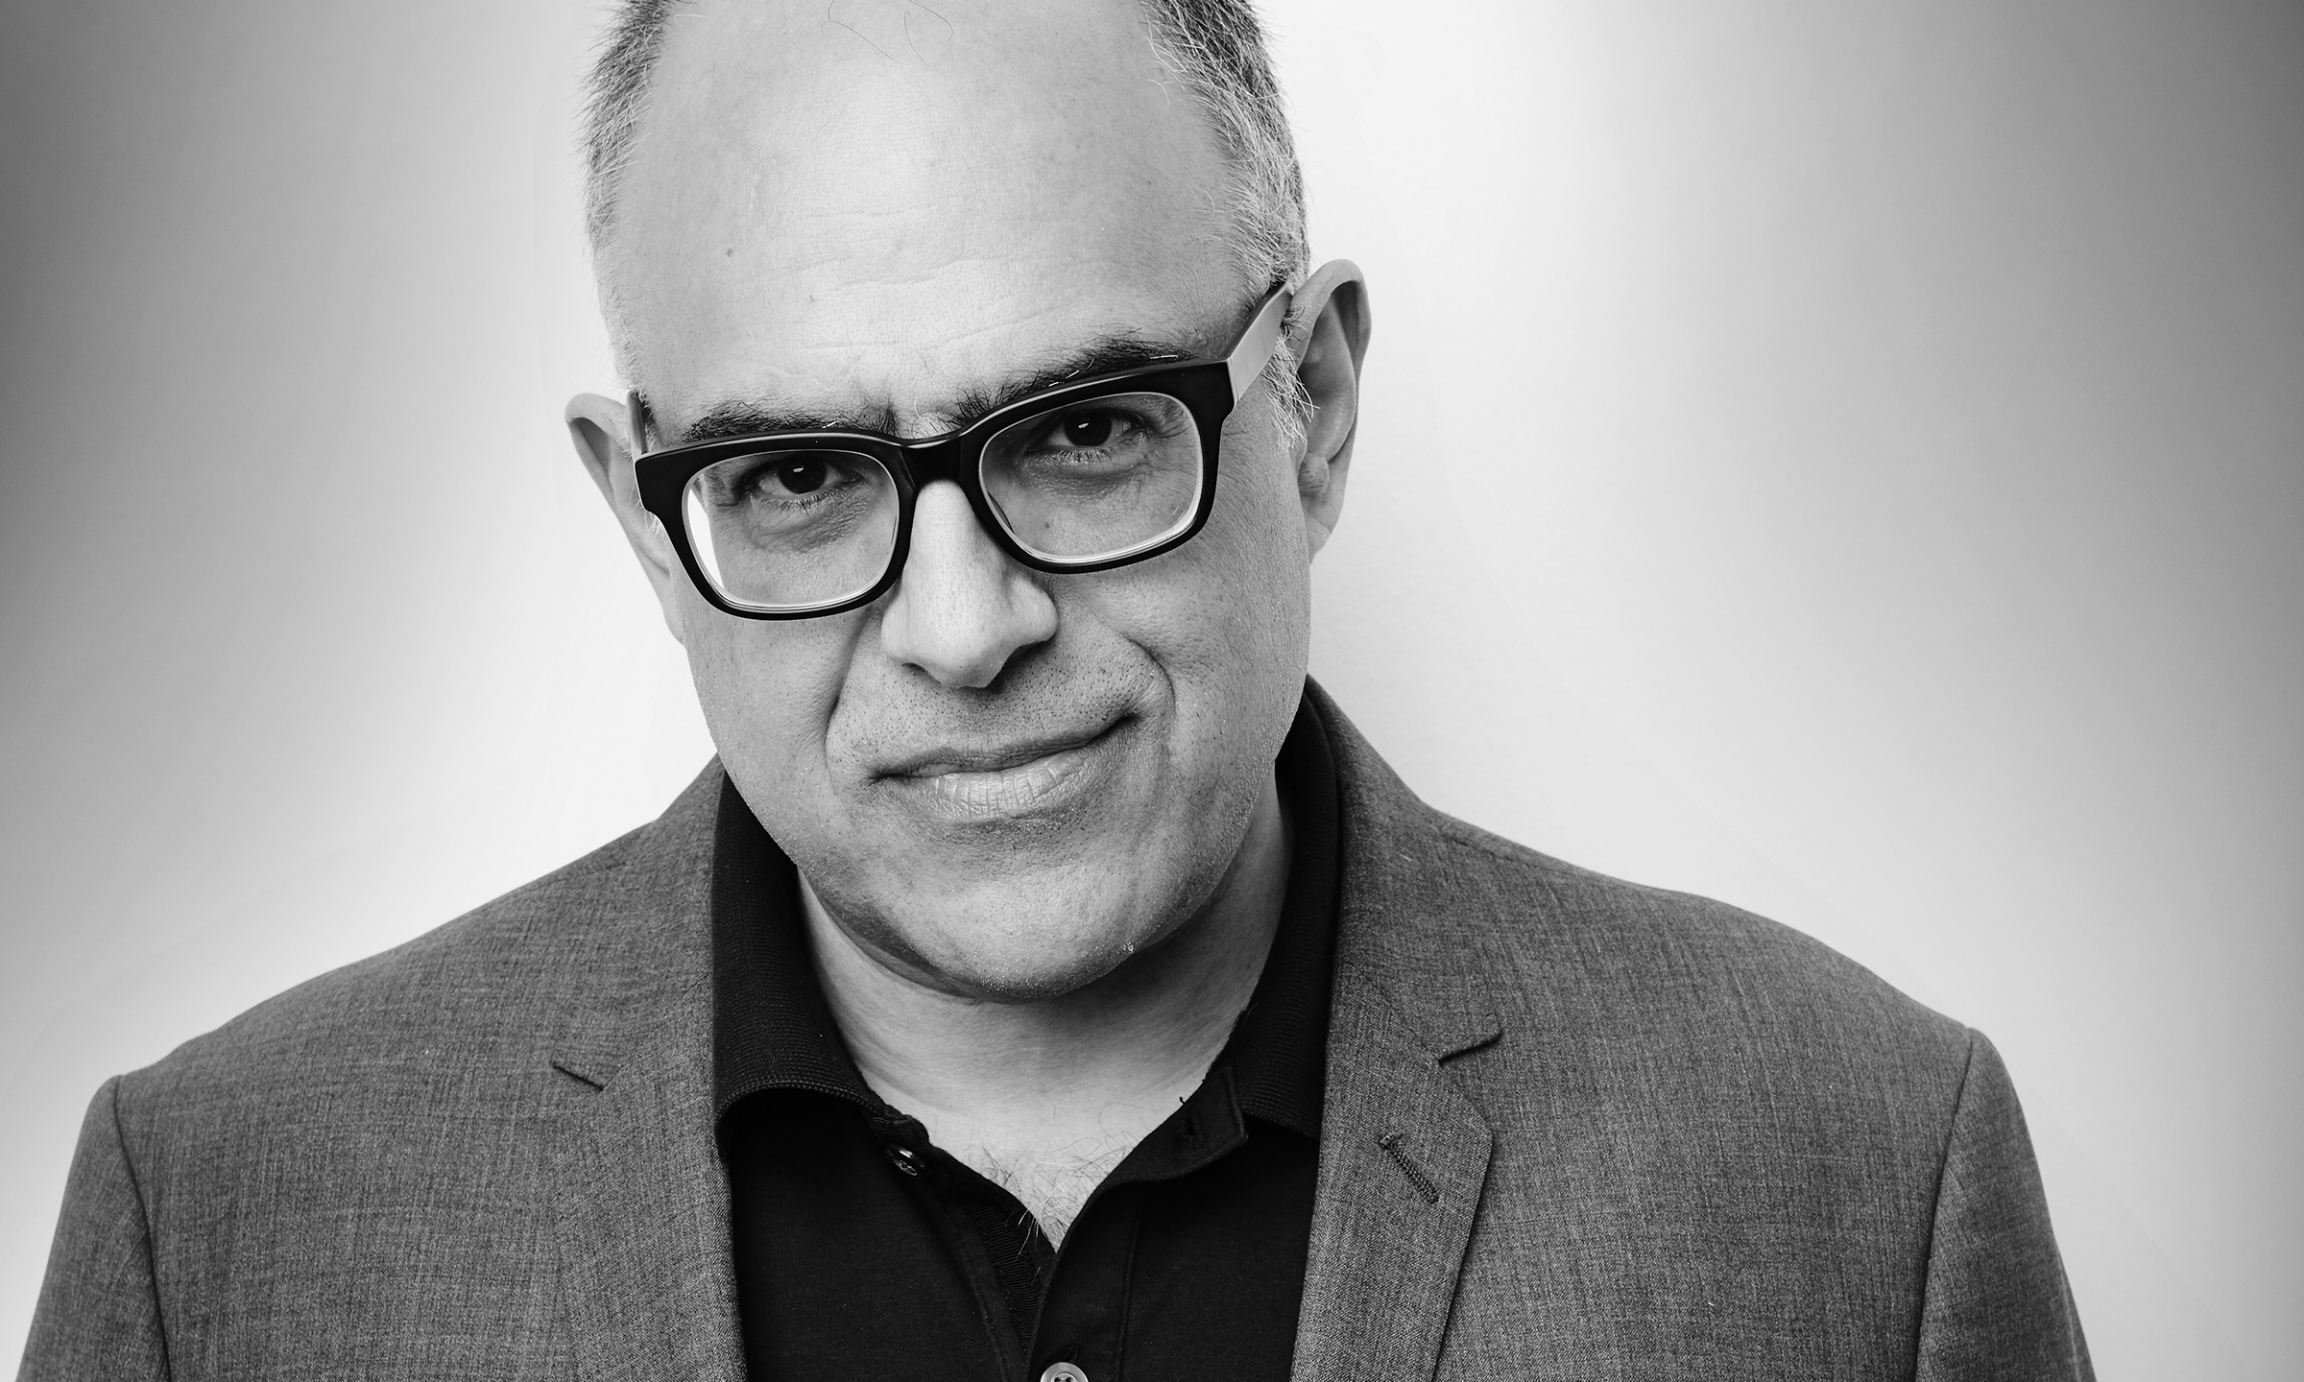 Composer David Yazbek